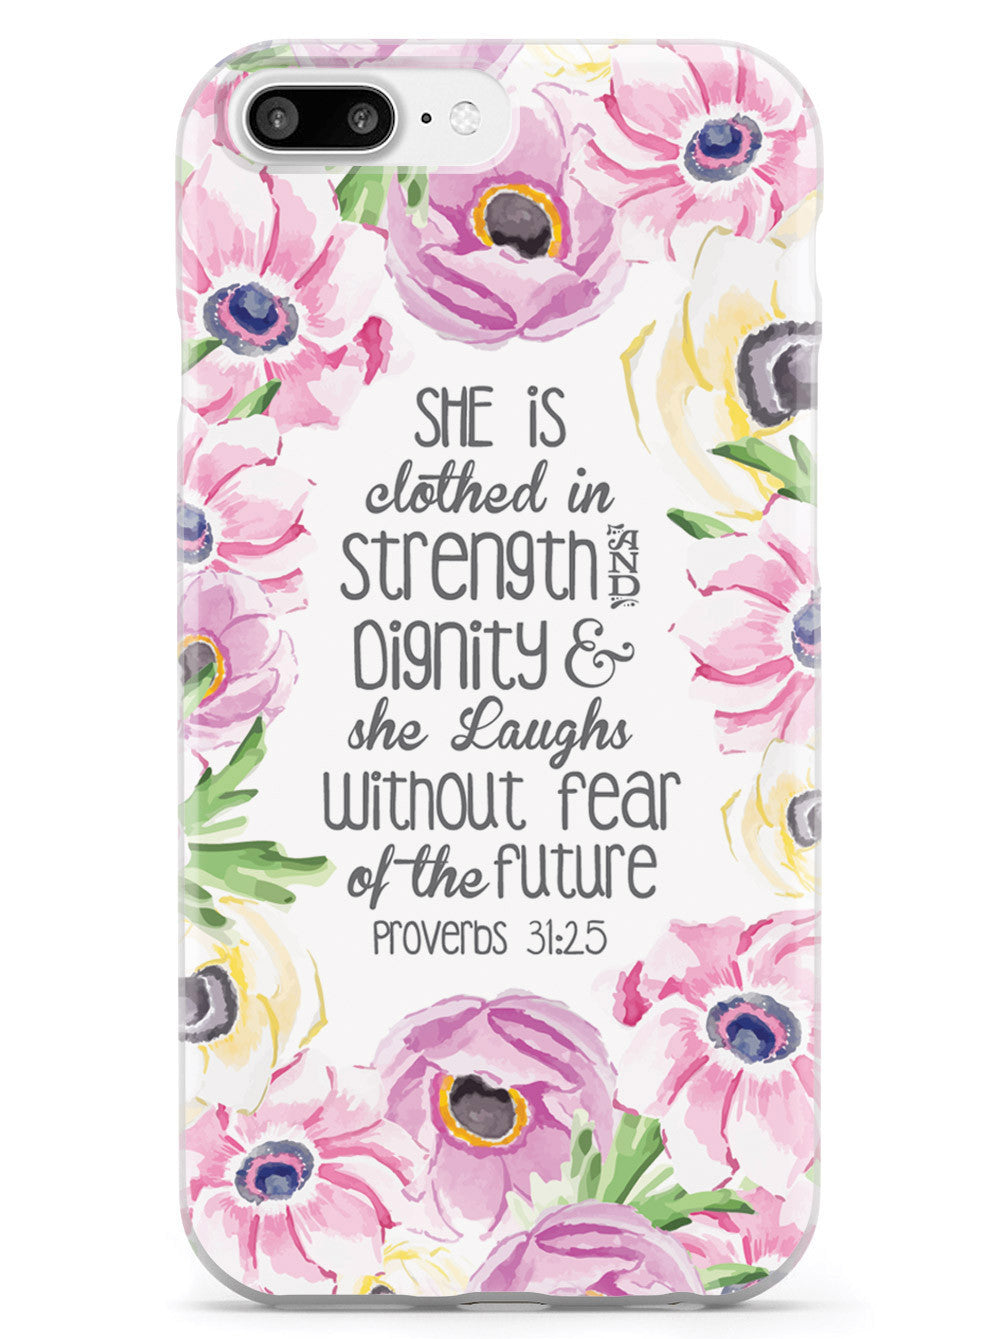 Proverbs 31.25 - Bible Verse Quote Inspirational Design Case